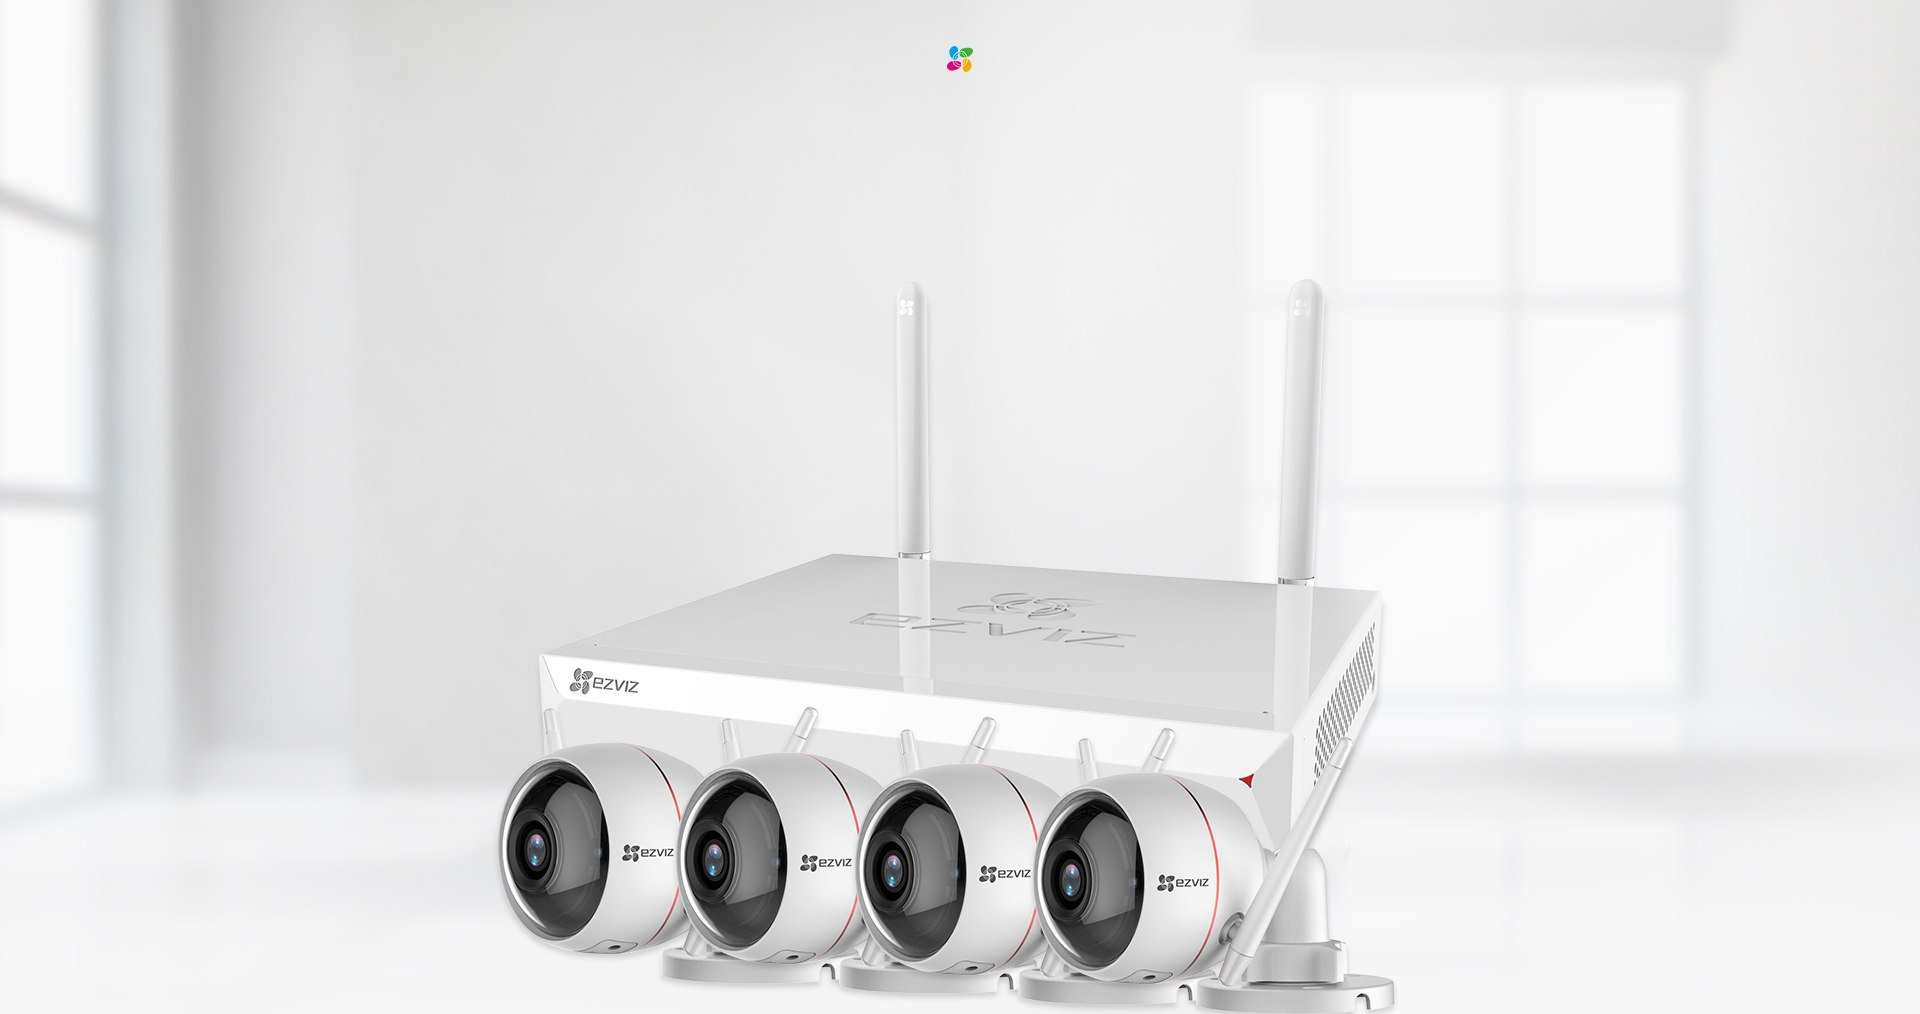 ezWireLess Kit  X5C (ezNVR) + C3W (ezGuard)  A comprehensive security kit with a wireless NVR and Wi-Fi cameras. Monitor and control your security system anytime, anywhere.